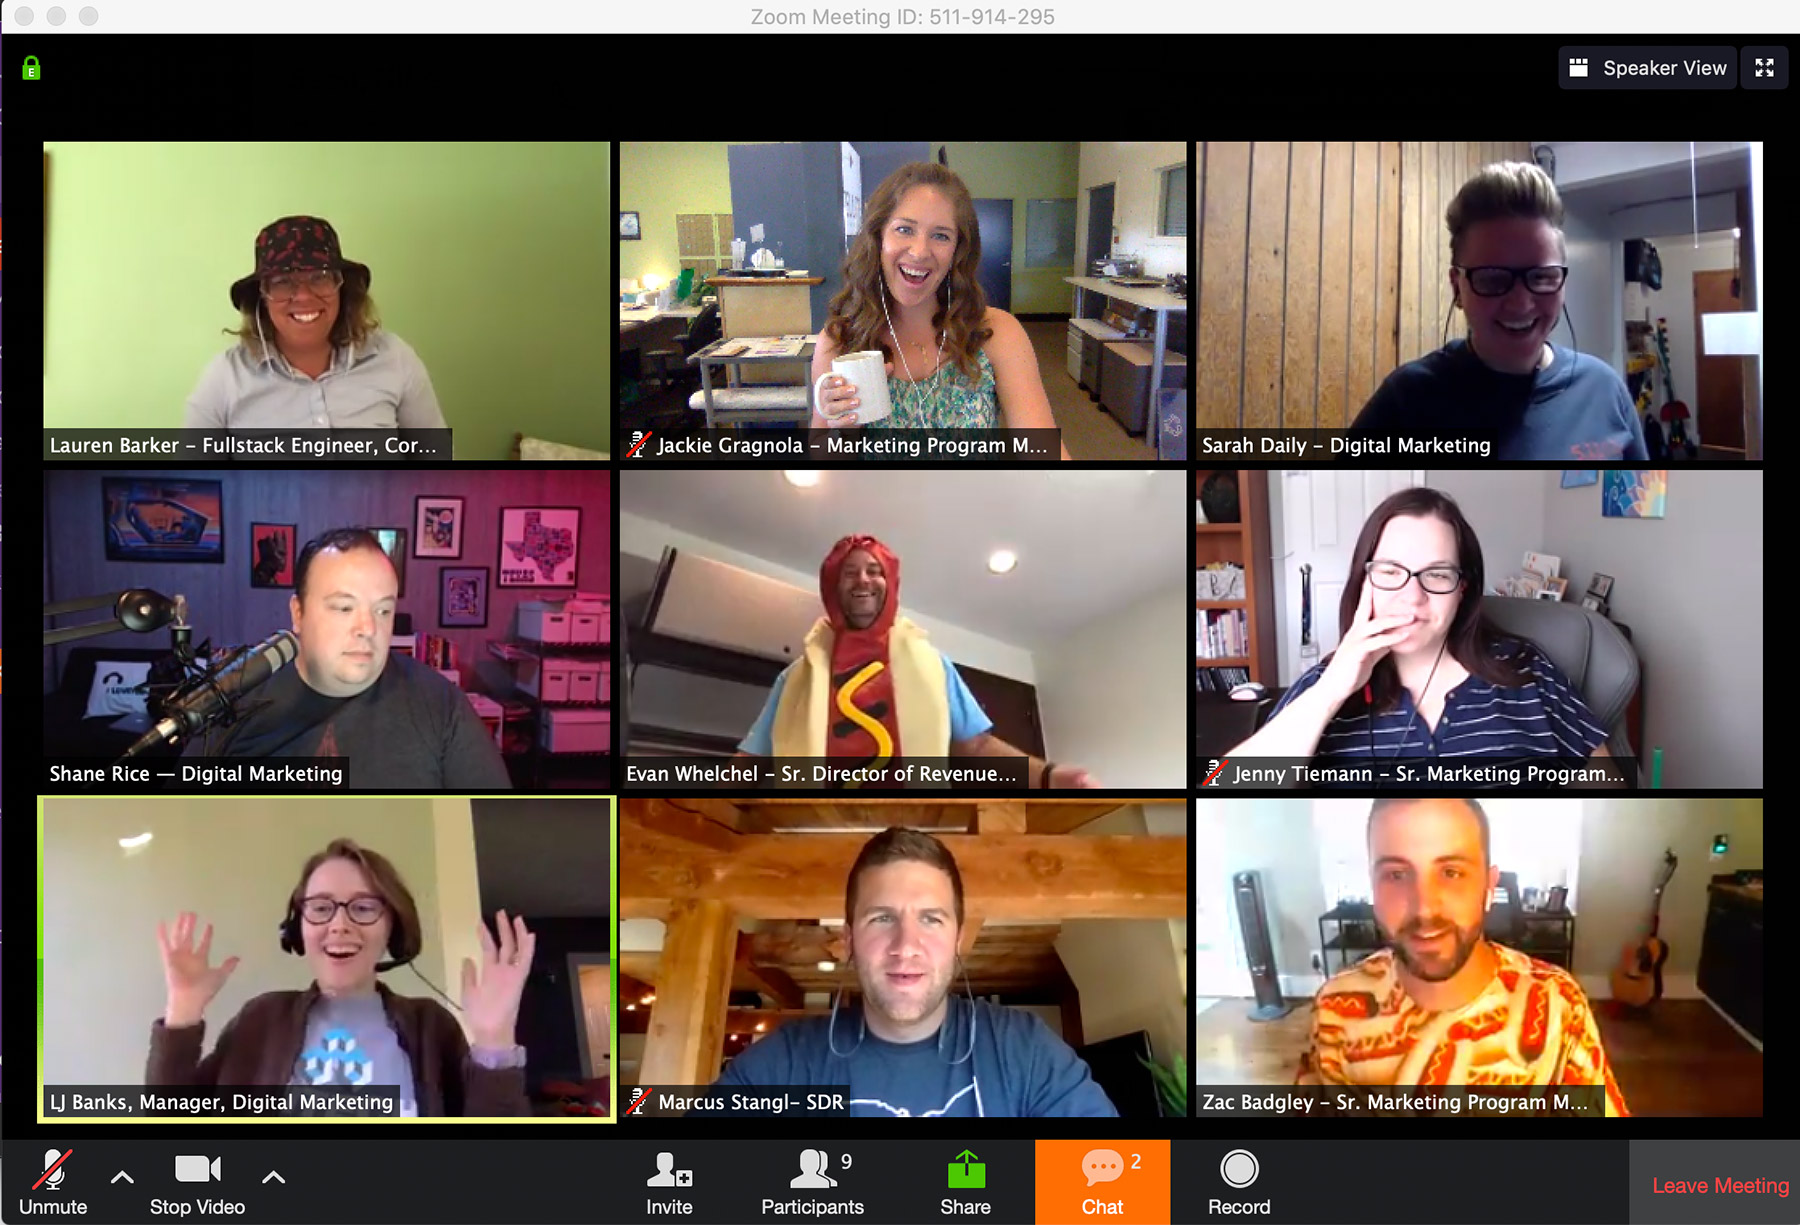 Group social calls are a great way for remote teams to connect and bond